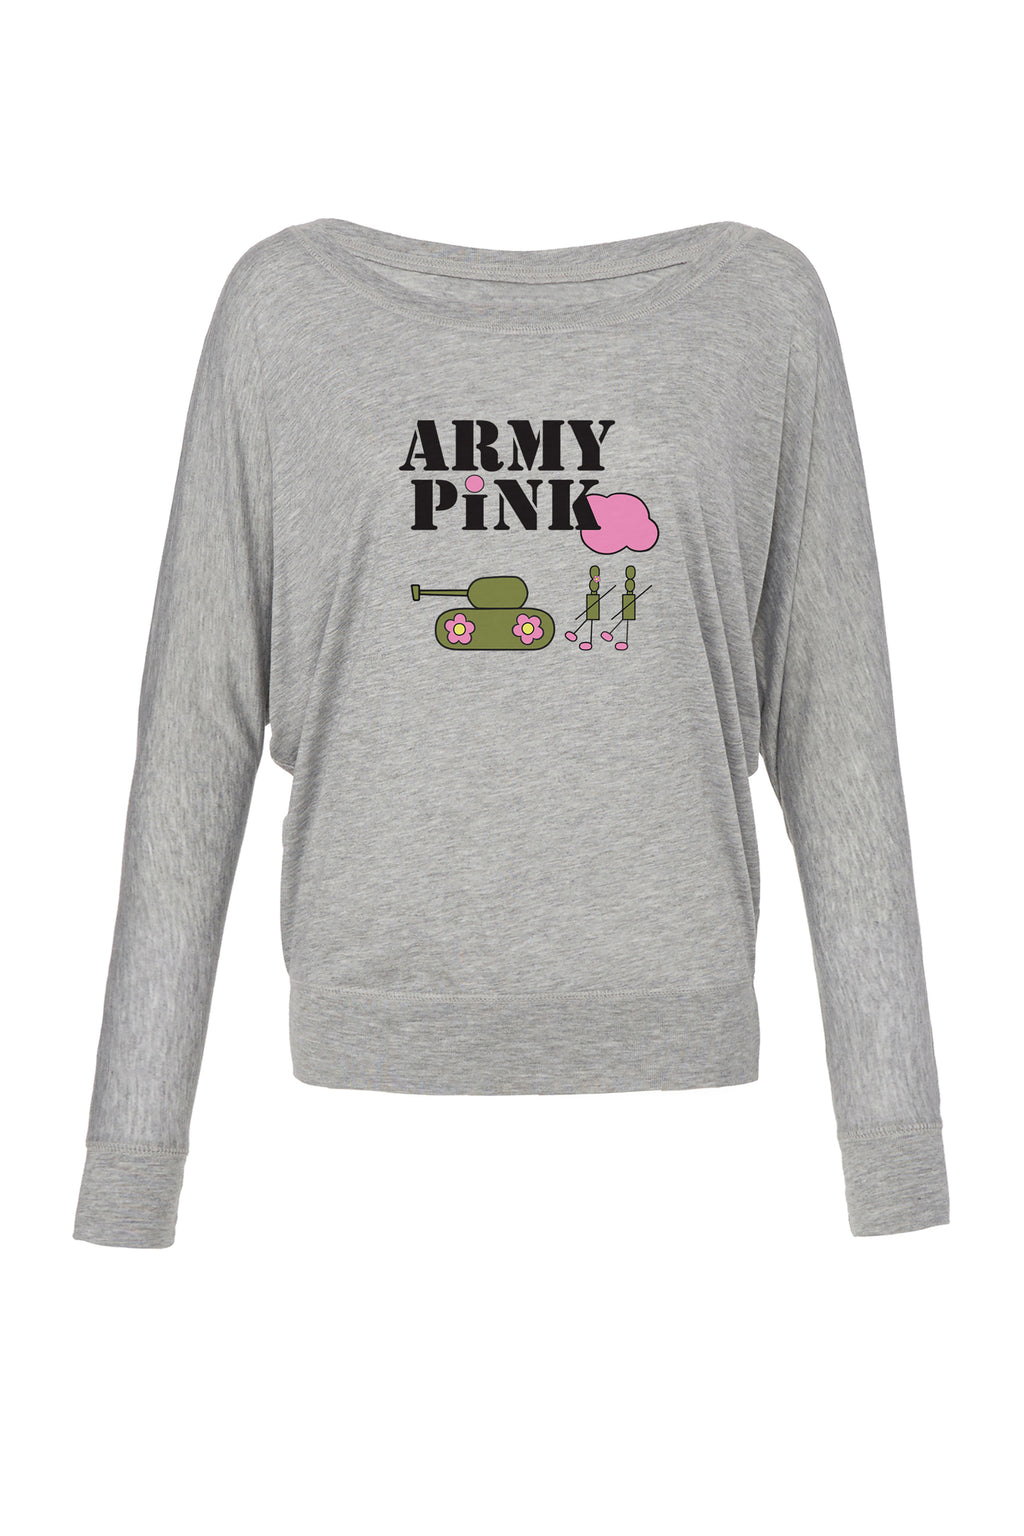 Athletic Heather Graphic Long Sleeve: Army Pink Logo for 42.00 at ARMY PINK